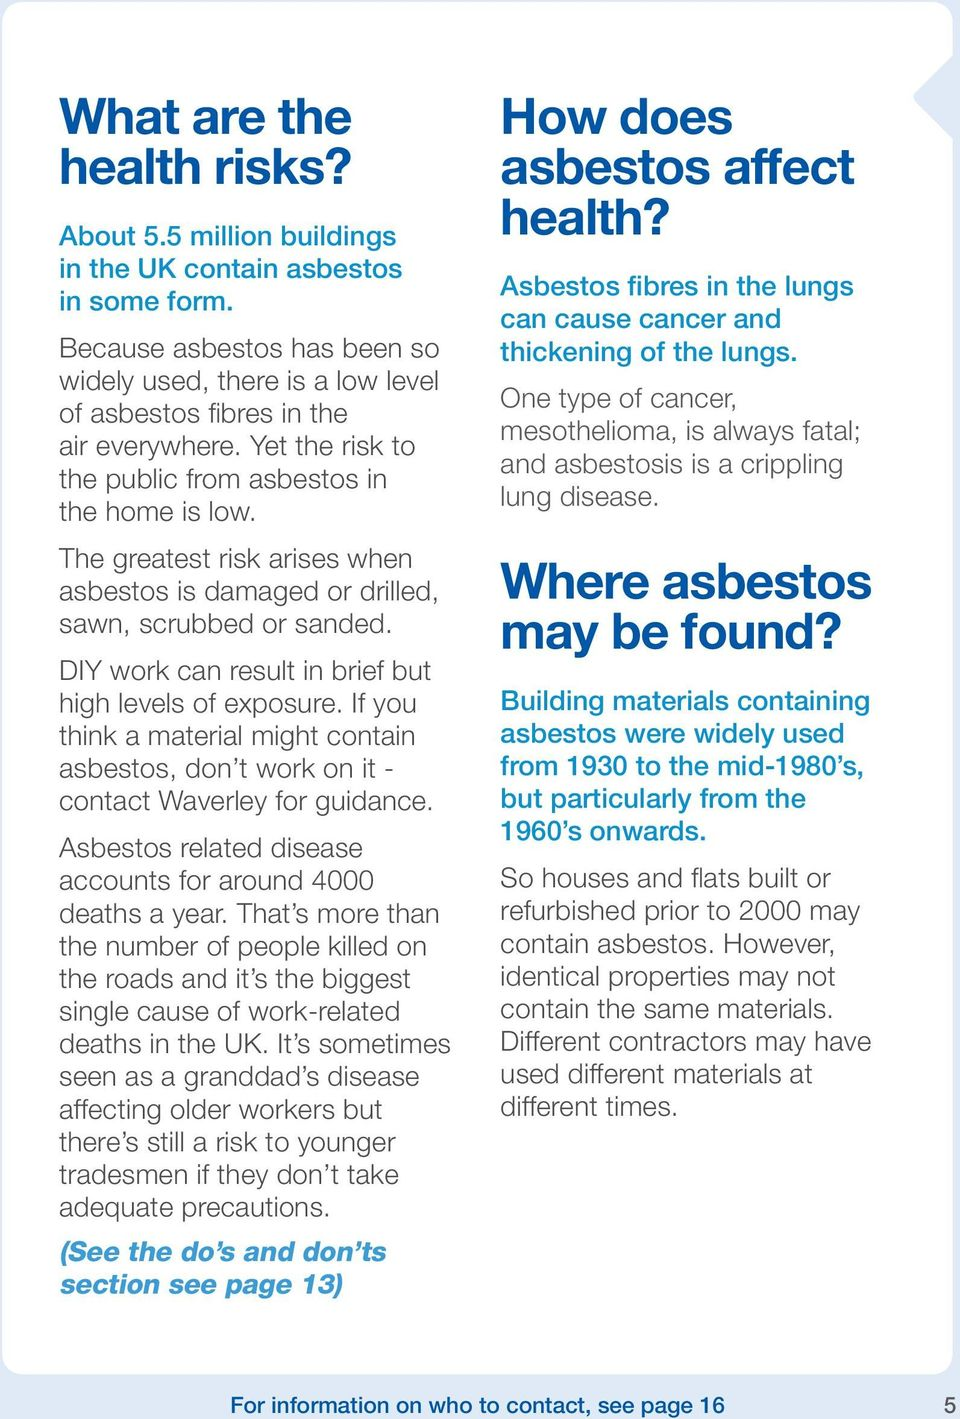 DIY work can result in brief but high levels of exposure. If you think a material might contain asbestos, don t work on it - contact Waverley for guidance.